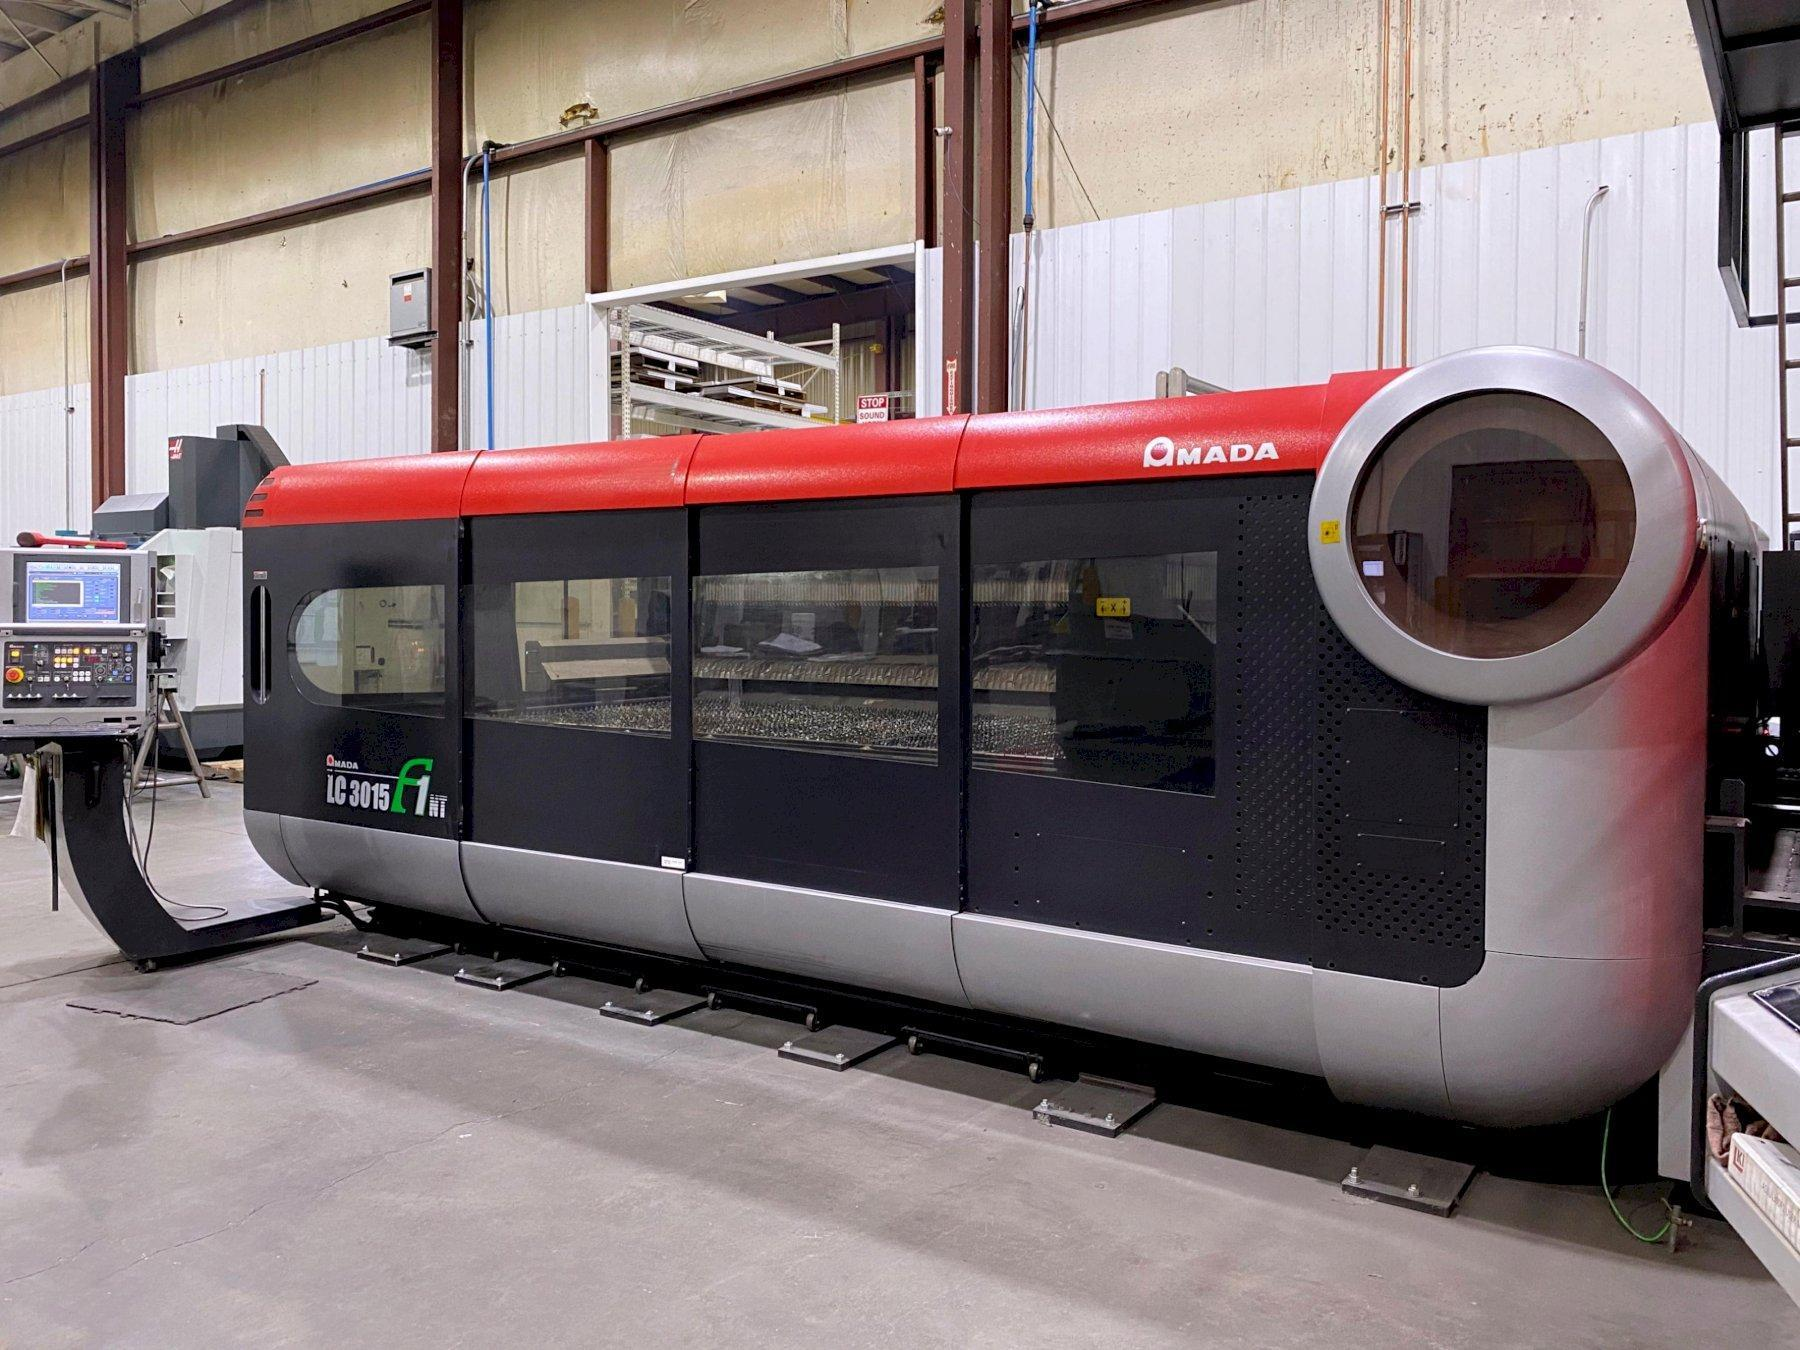 Amada LC-3015F1 NT (2012) CO2 Laser